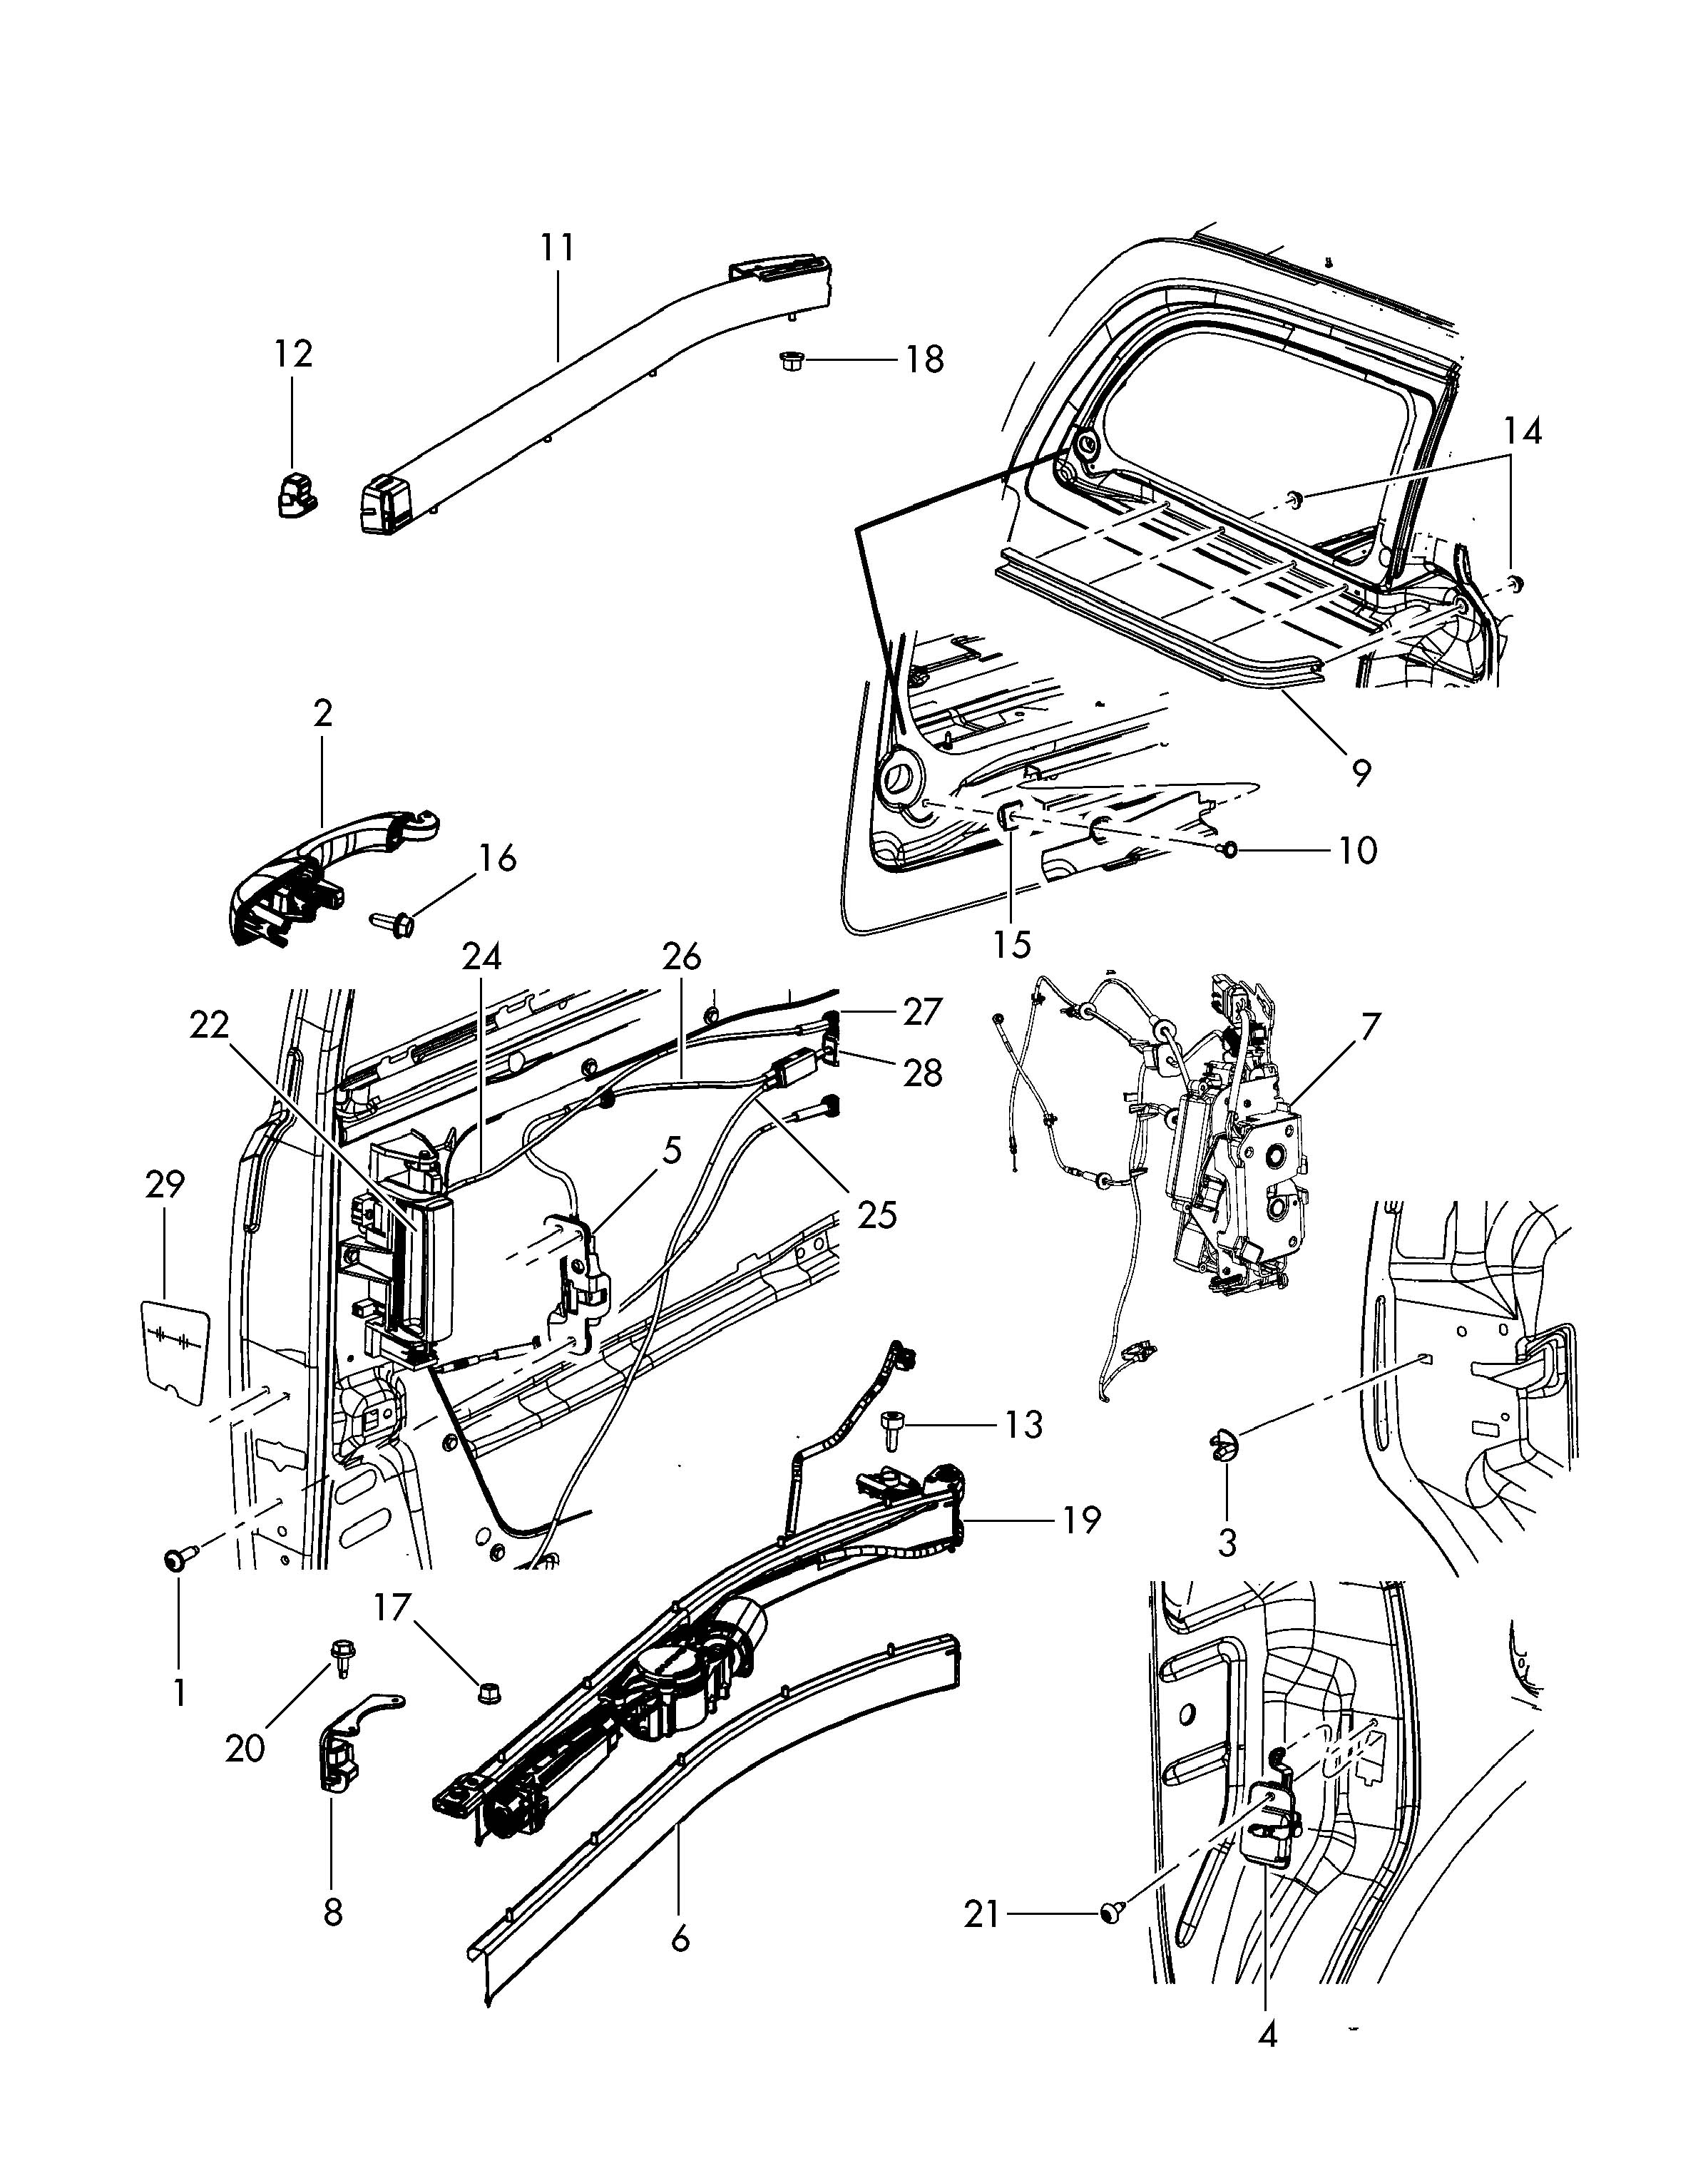 Service manual [How To Remove Sliding Door Cable 2011